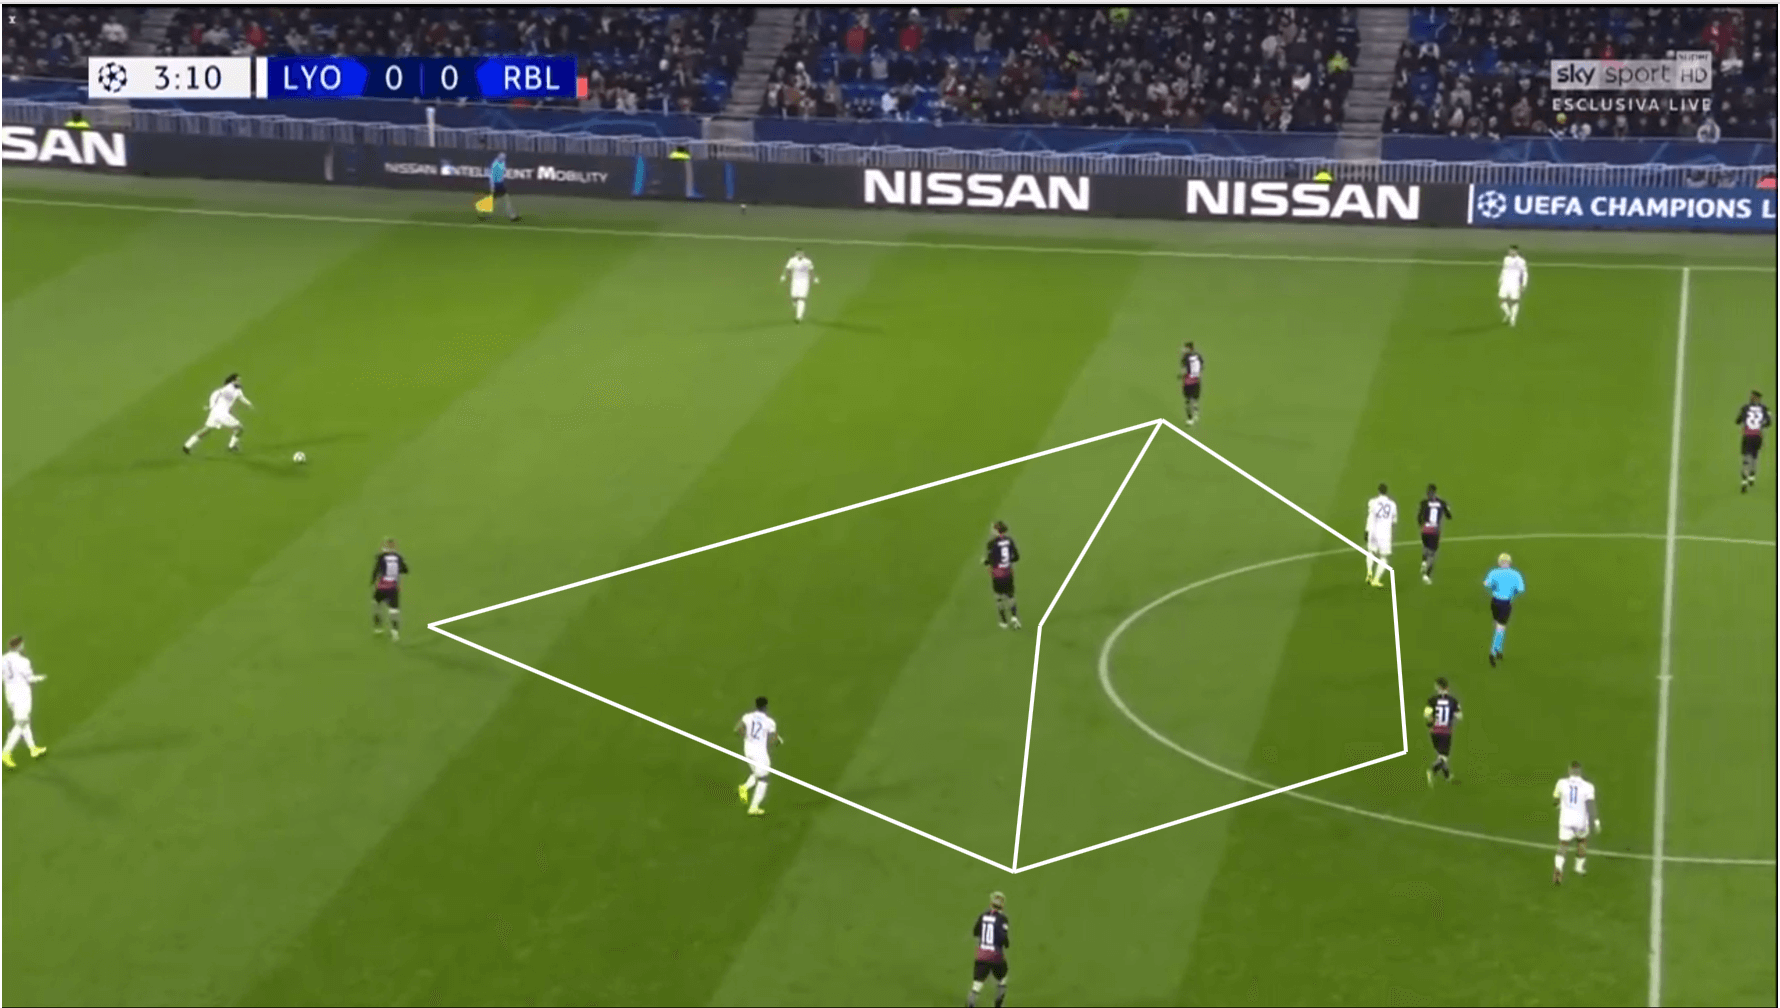 UEFA Champions League 2019/20: Lyon vs RB Leipzig - tactical analysis tactics